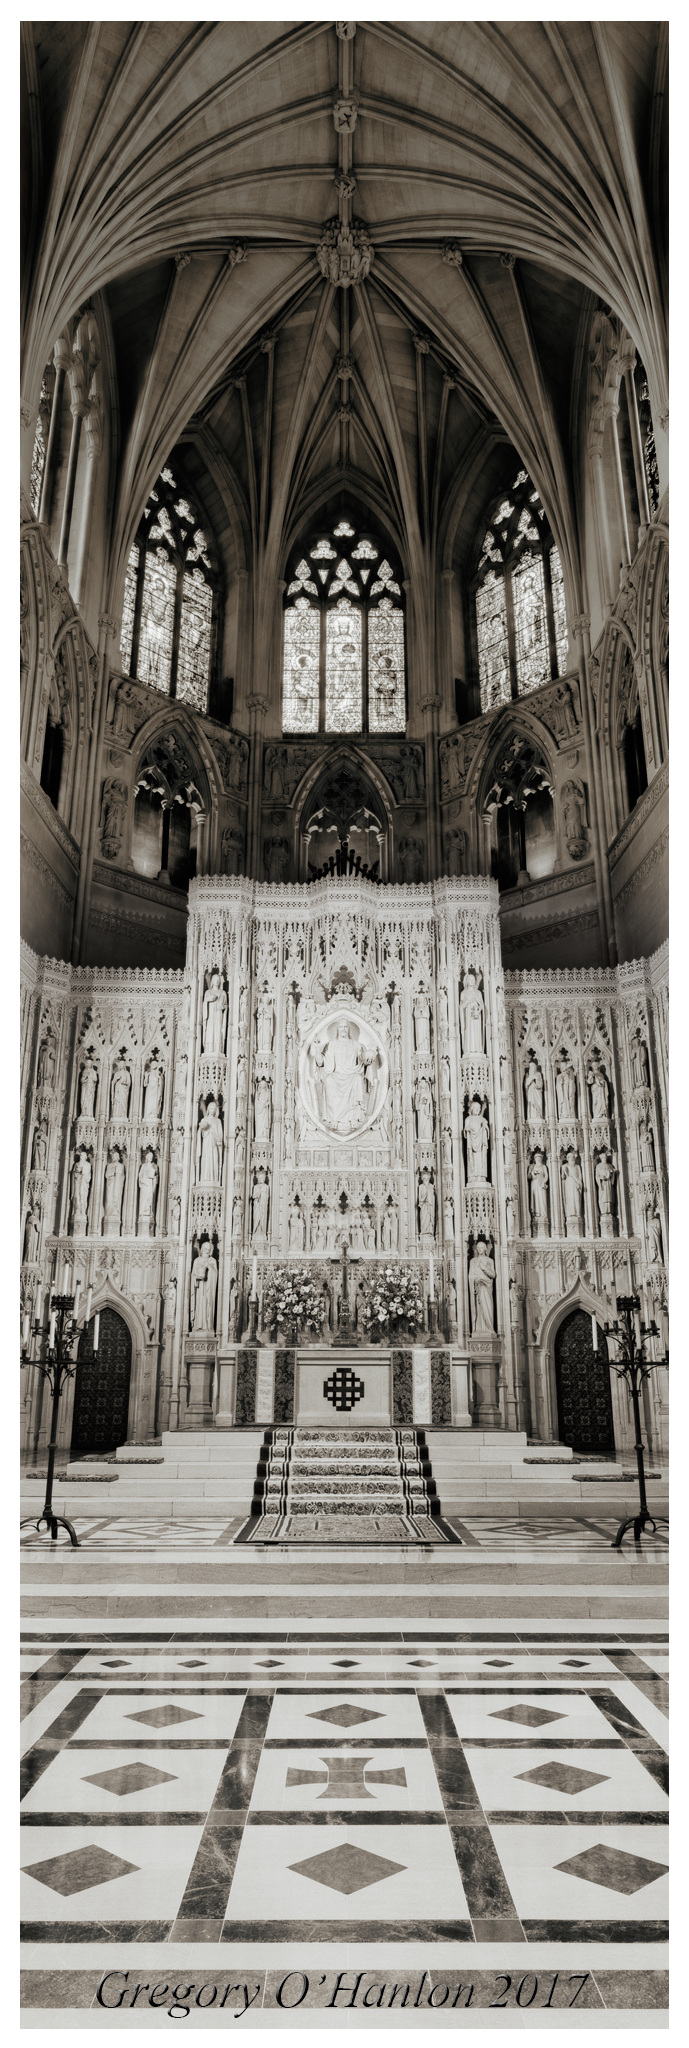 Gregory O'Hanlon - High Altar - National Cathedral - photograph - 40 inch panoramic